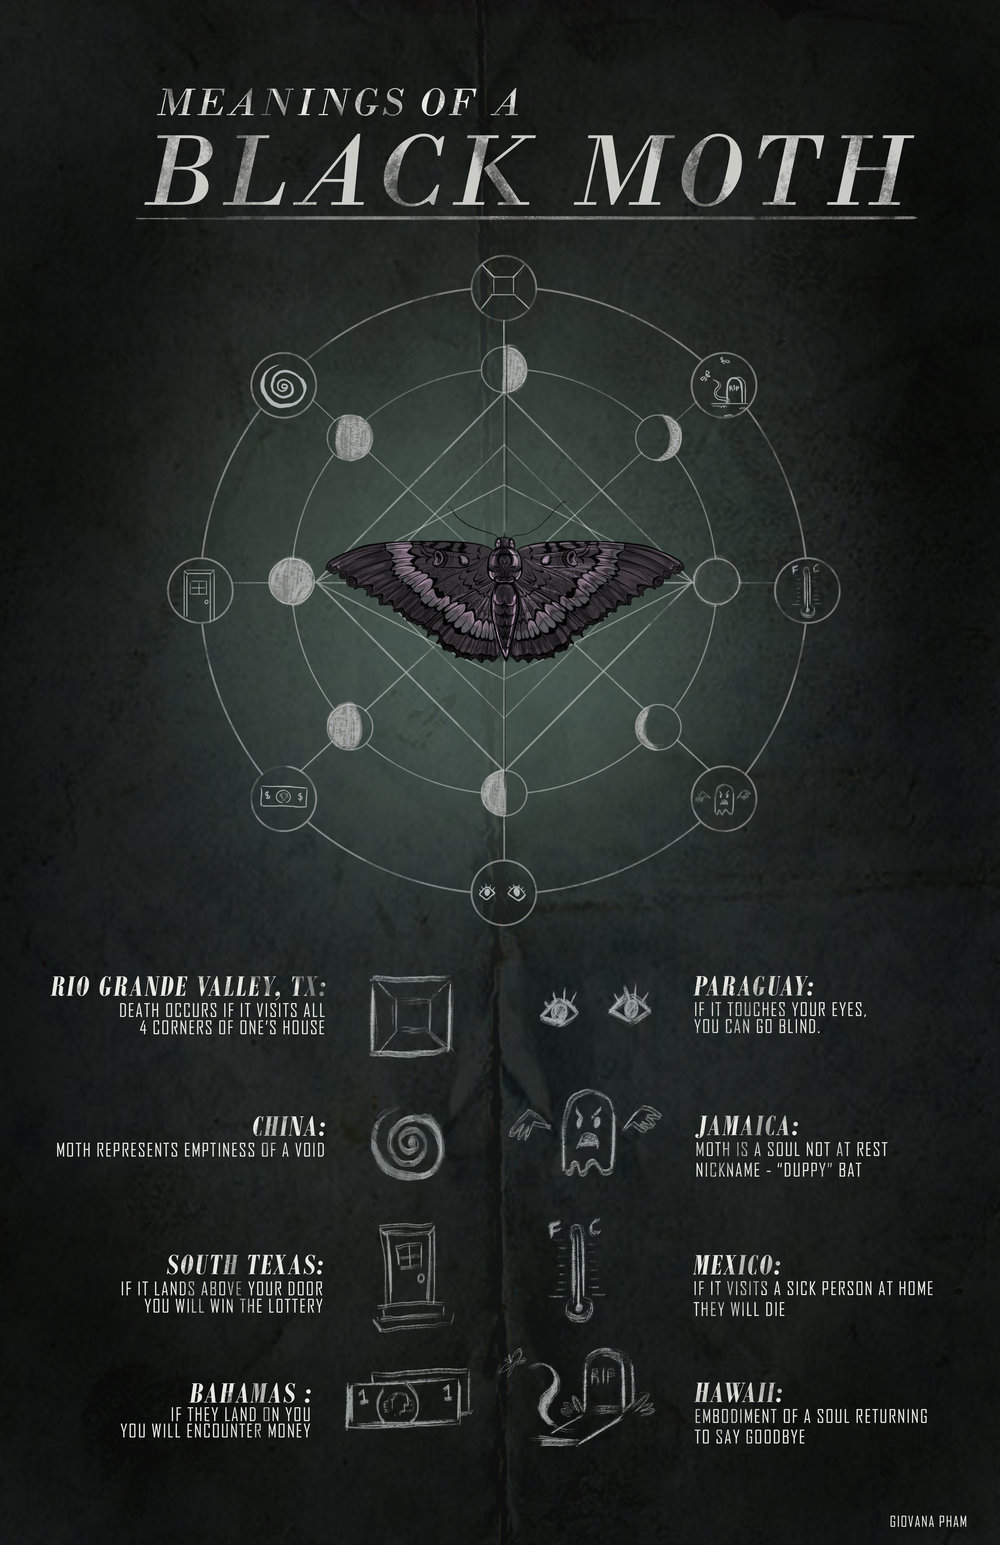 black_moth_infographic_final.jpg